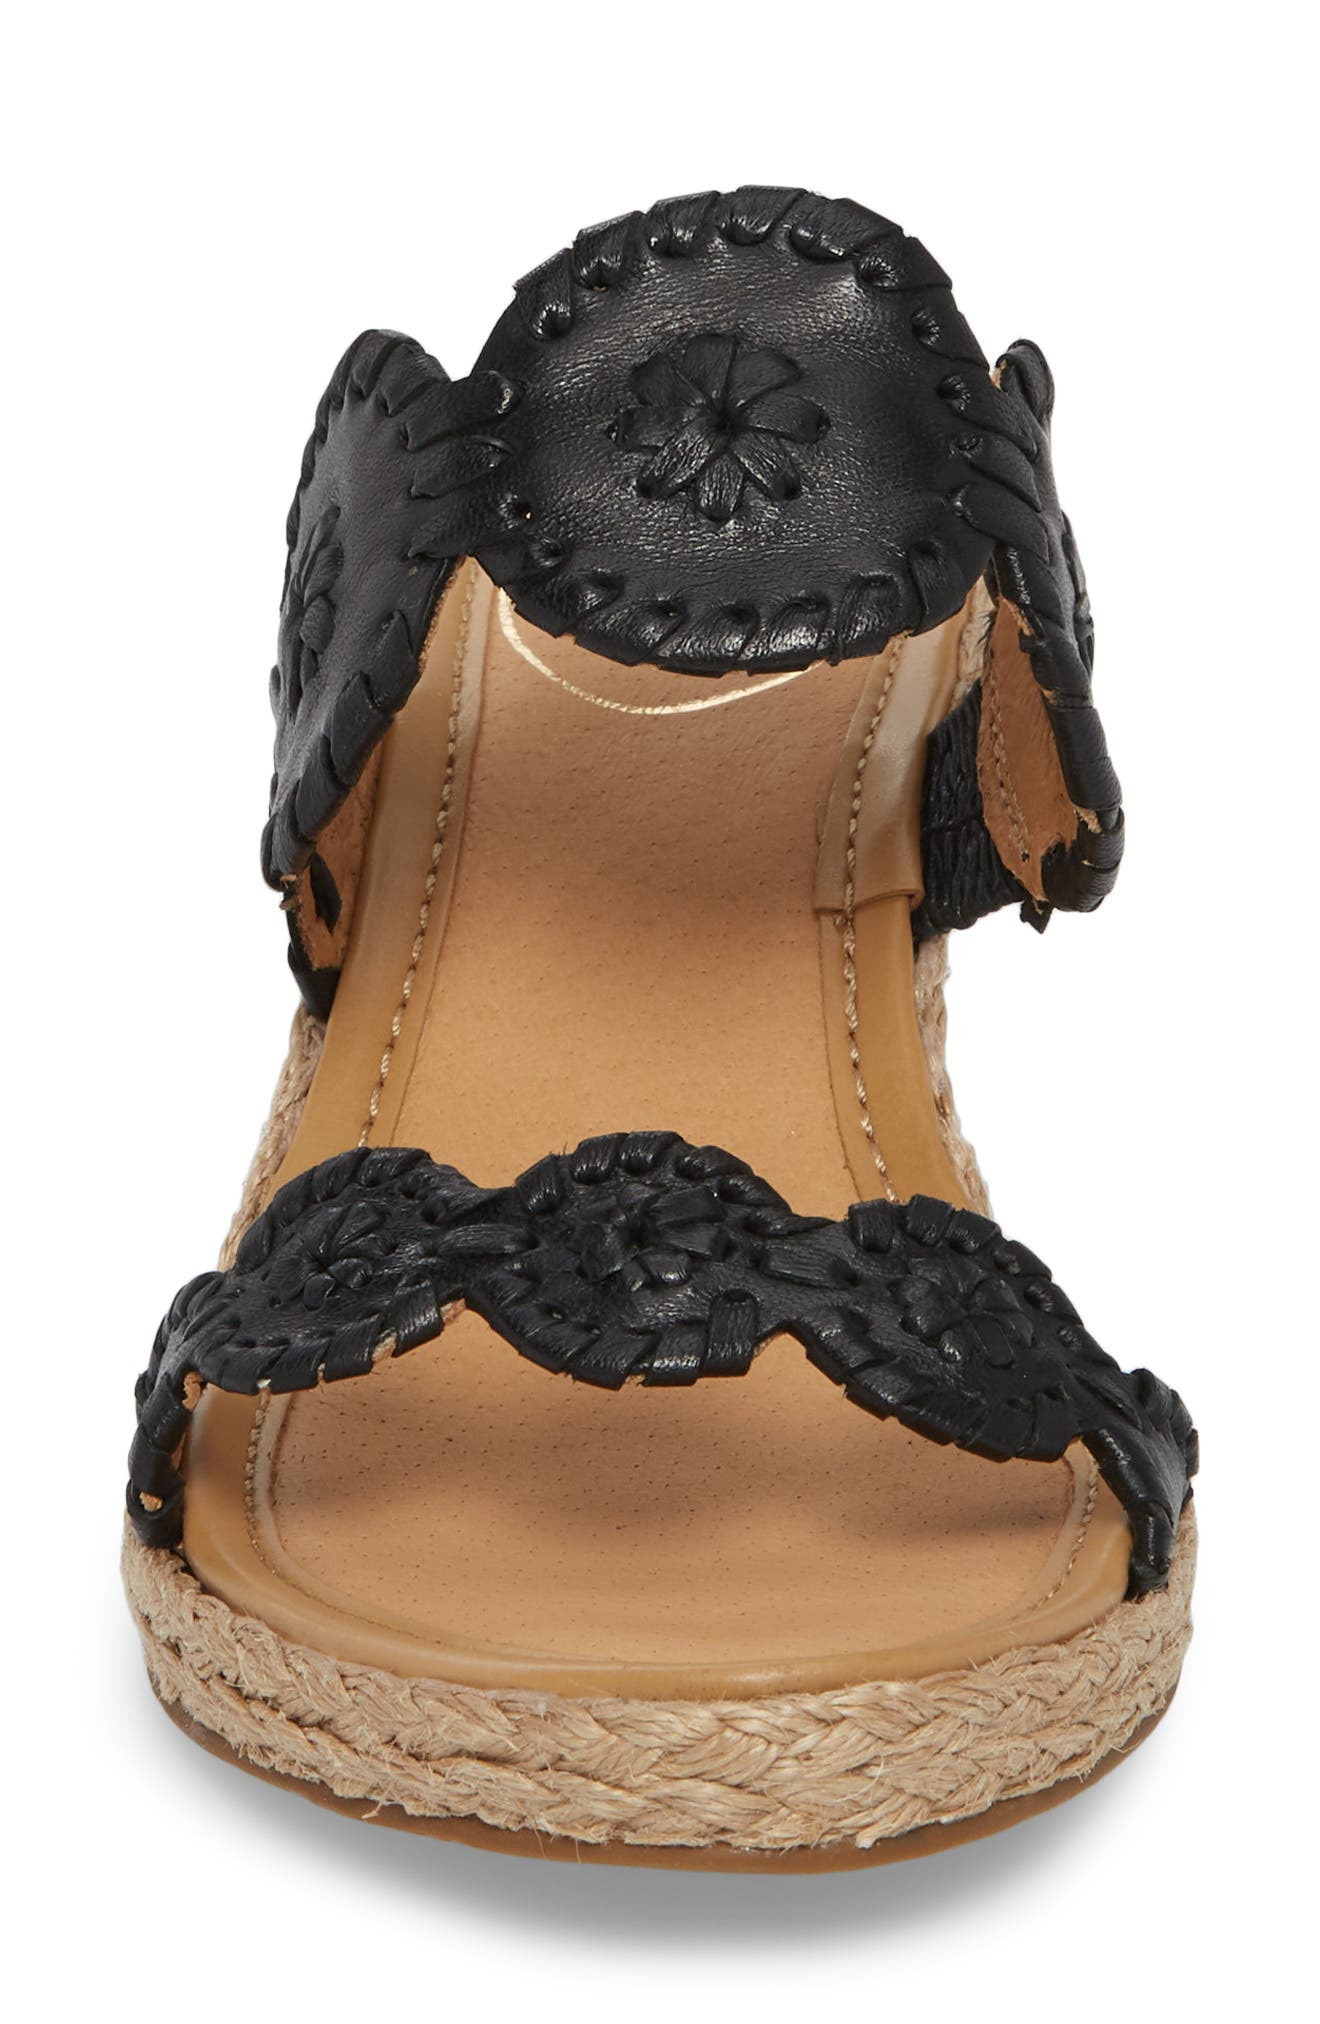 'Shelby' Whipstitched Wedge Sandal,                             Alternate thumbnail 4, color,                             Black Leather